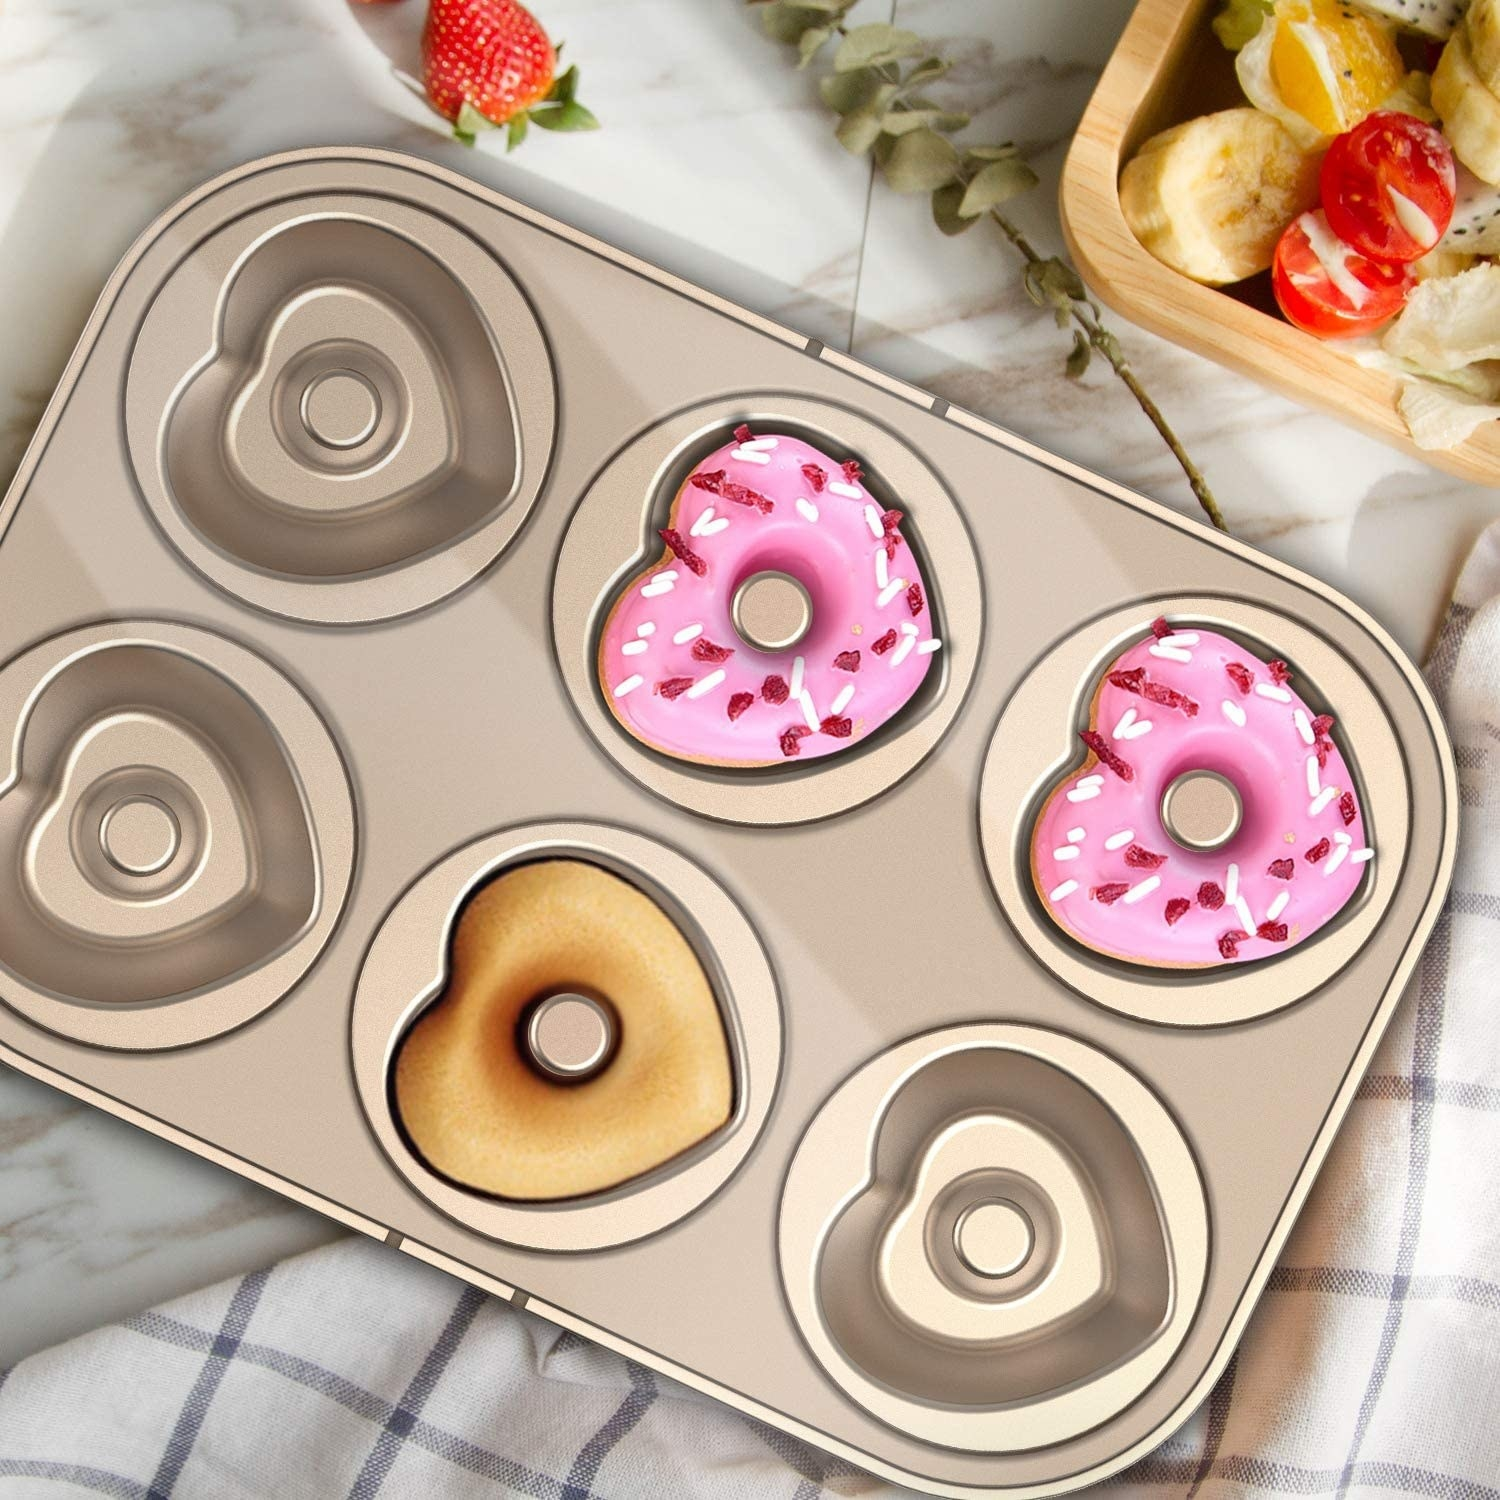 Two frosted donuts and one plain donut in the pan